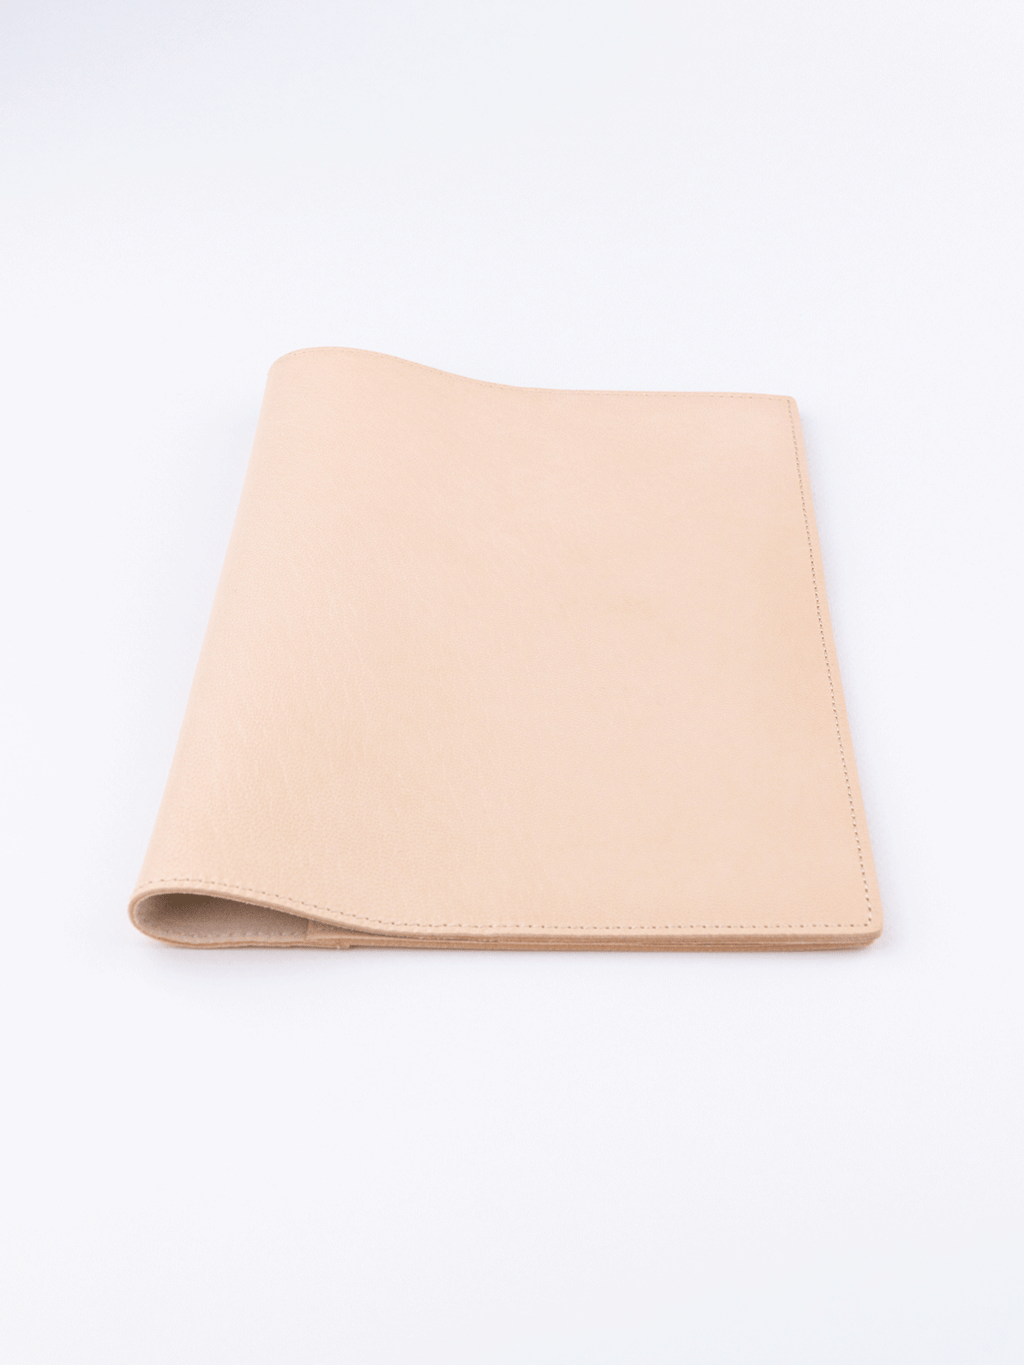 Midori MD A5 Goat Leather Notebook Cover